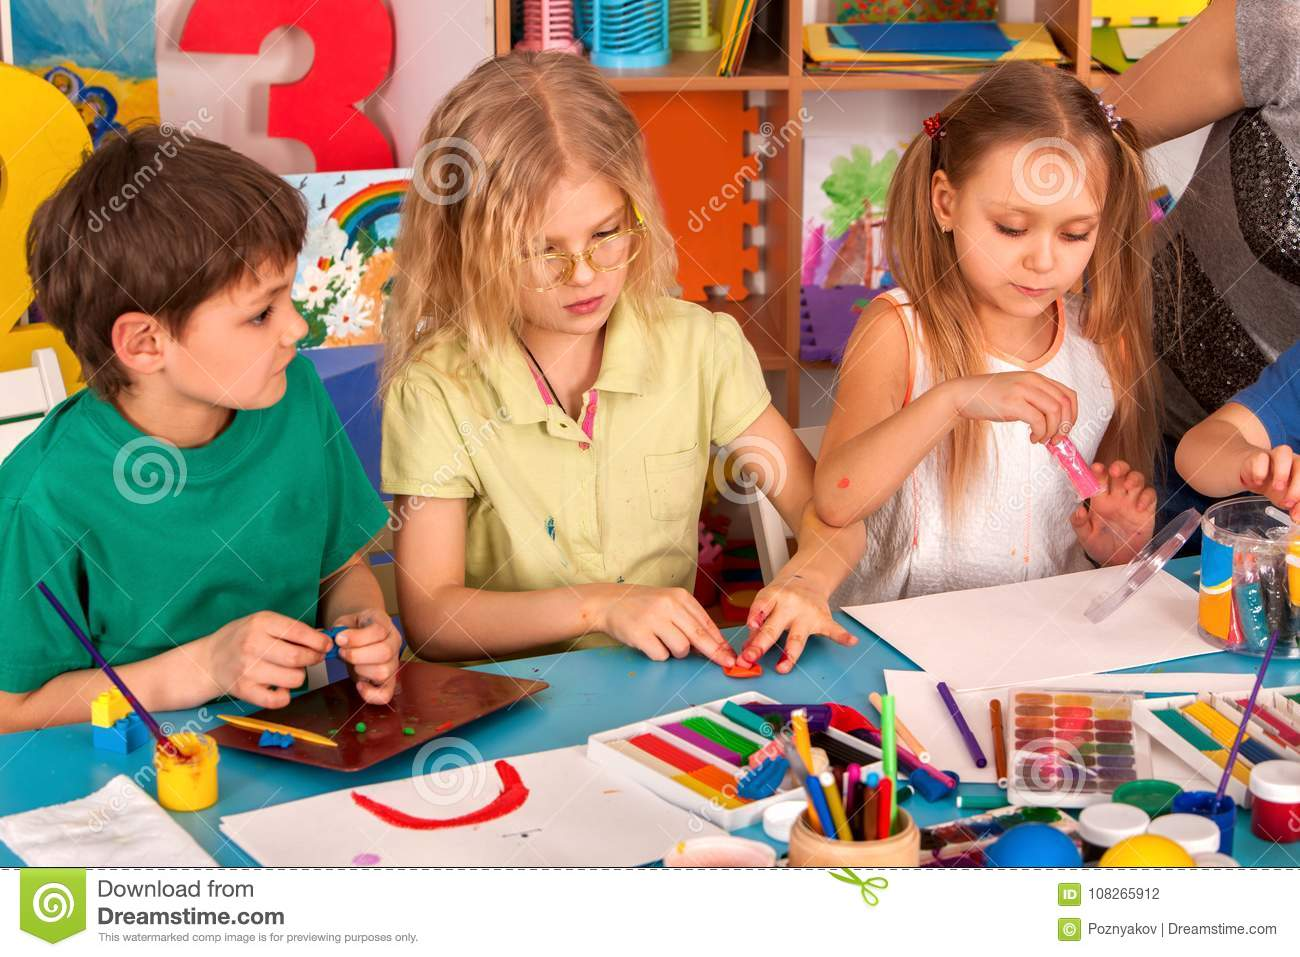 Download Child Dough Play In School. Plasticine For Children. Stock Photo - Image of dough, picture: 108265912